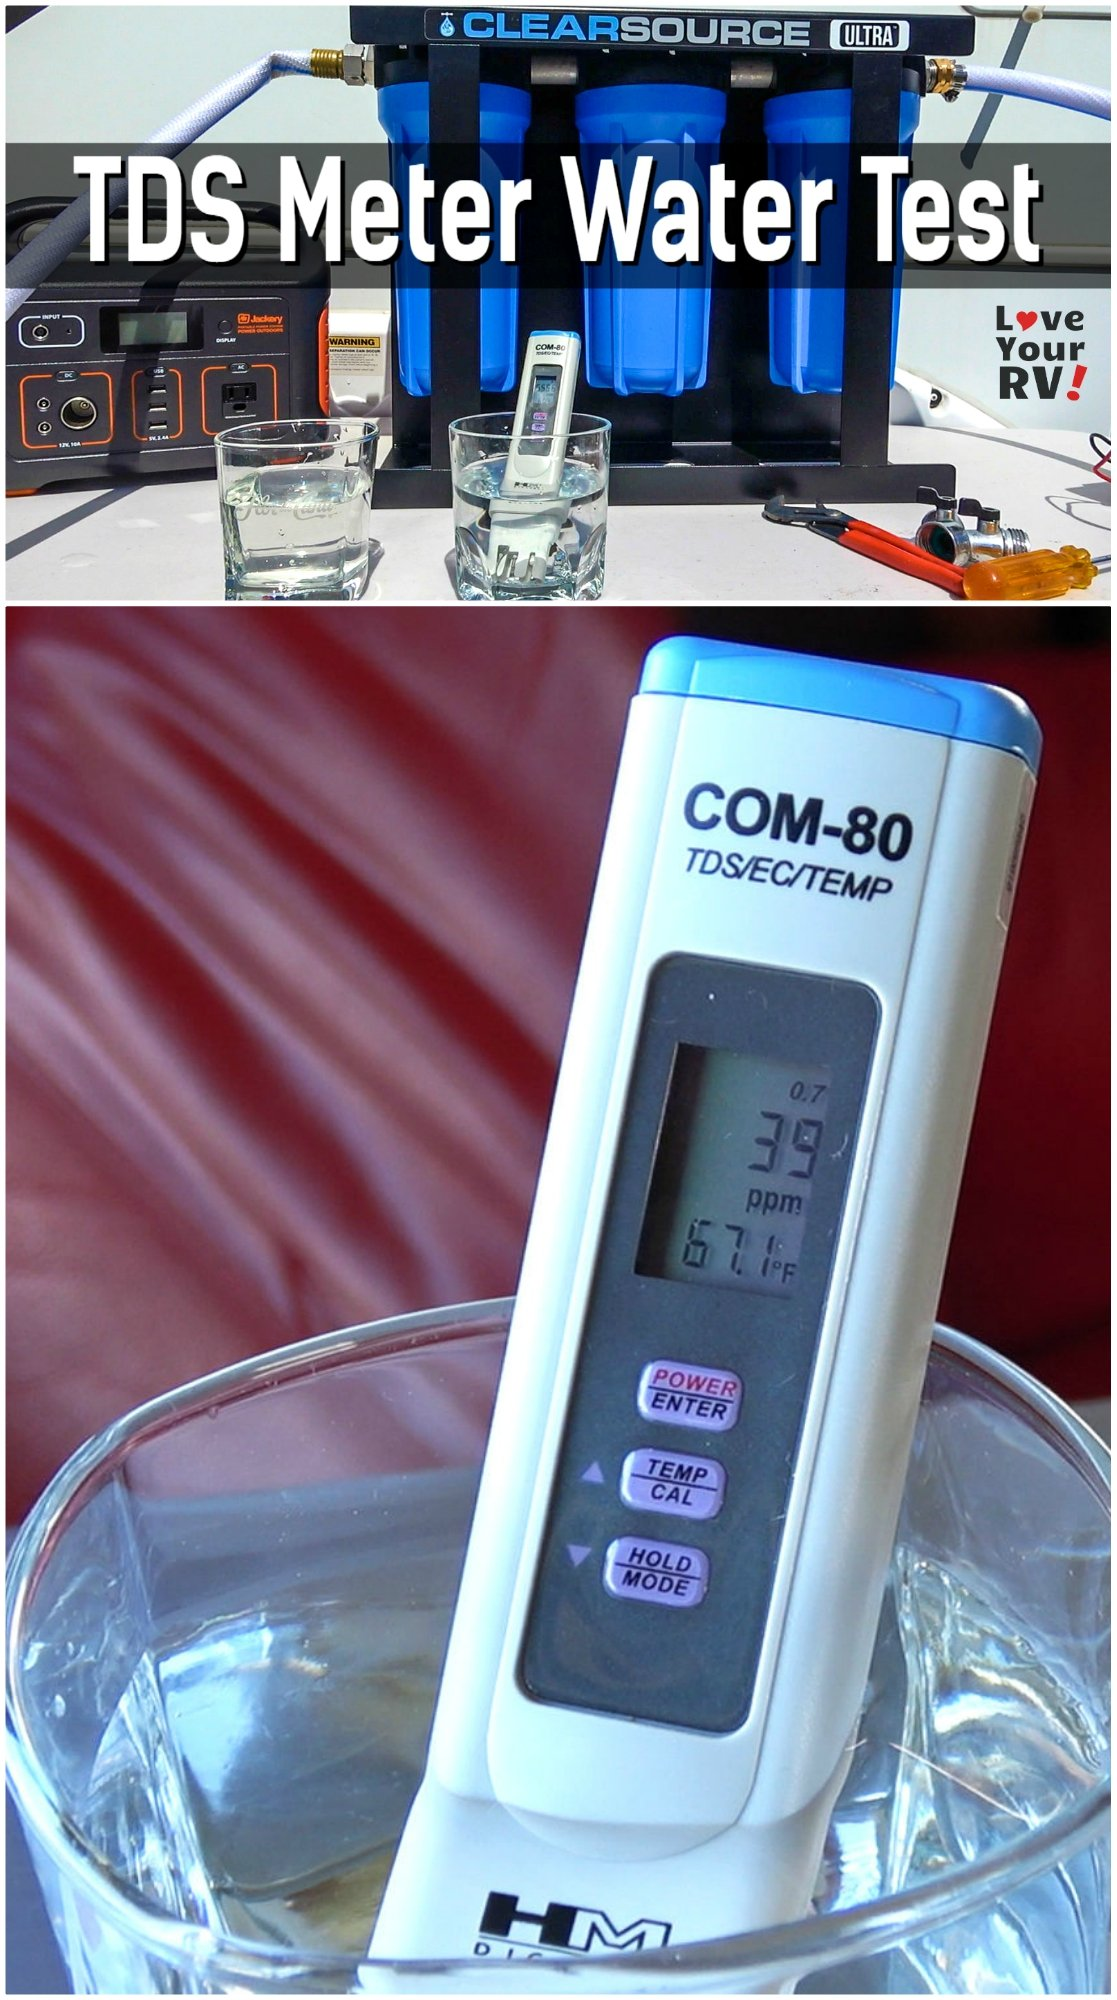 RV Water Testing with a TDS Meter Total Dissolved Solids